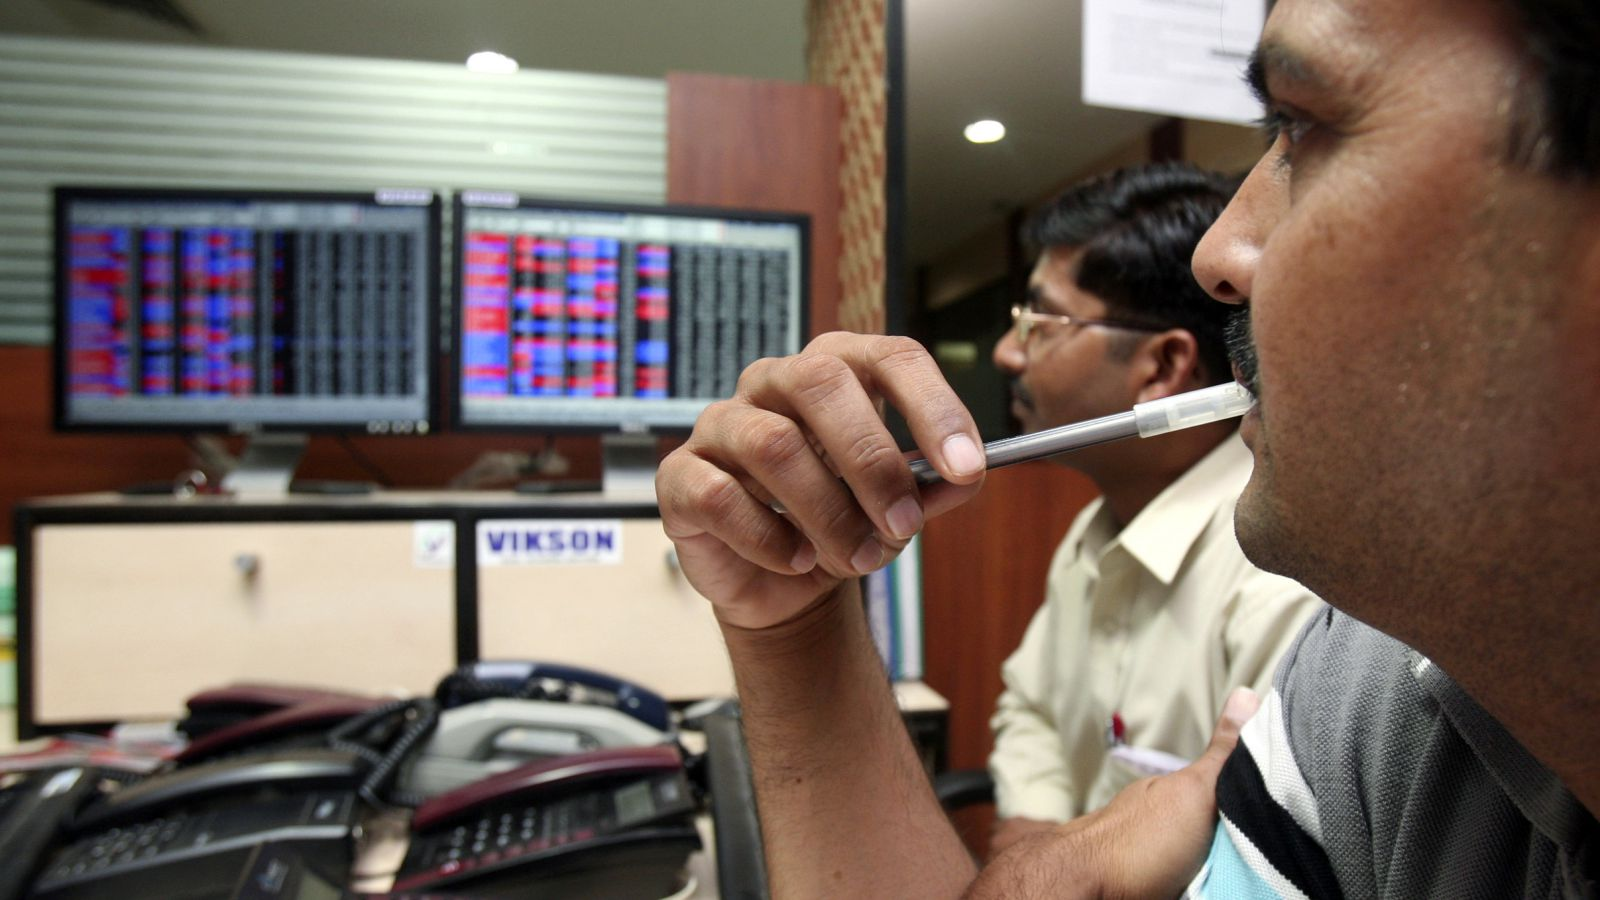 Investors watch the share index at a local share trading market in the northern Indian city of Chandigarh November 12, 2008. India's main stock index provisionally closed 2.94 percent lower on Wednesday. The 30-share main BSE index provisionally closed 288.92 points lower at 9550.77